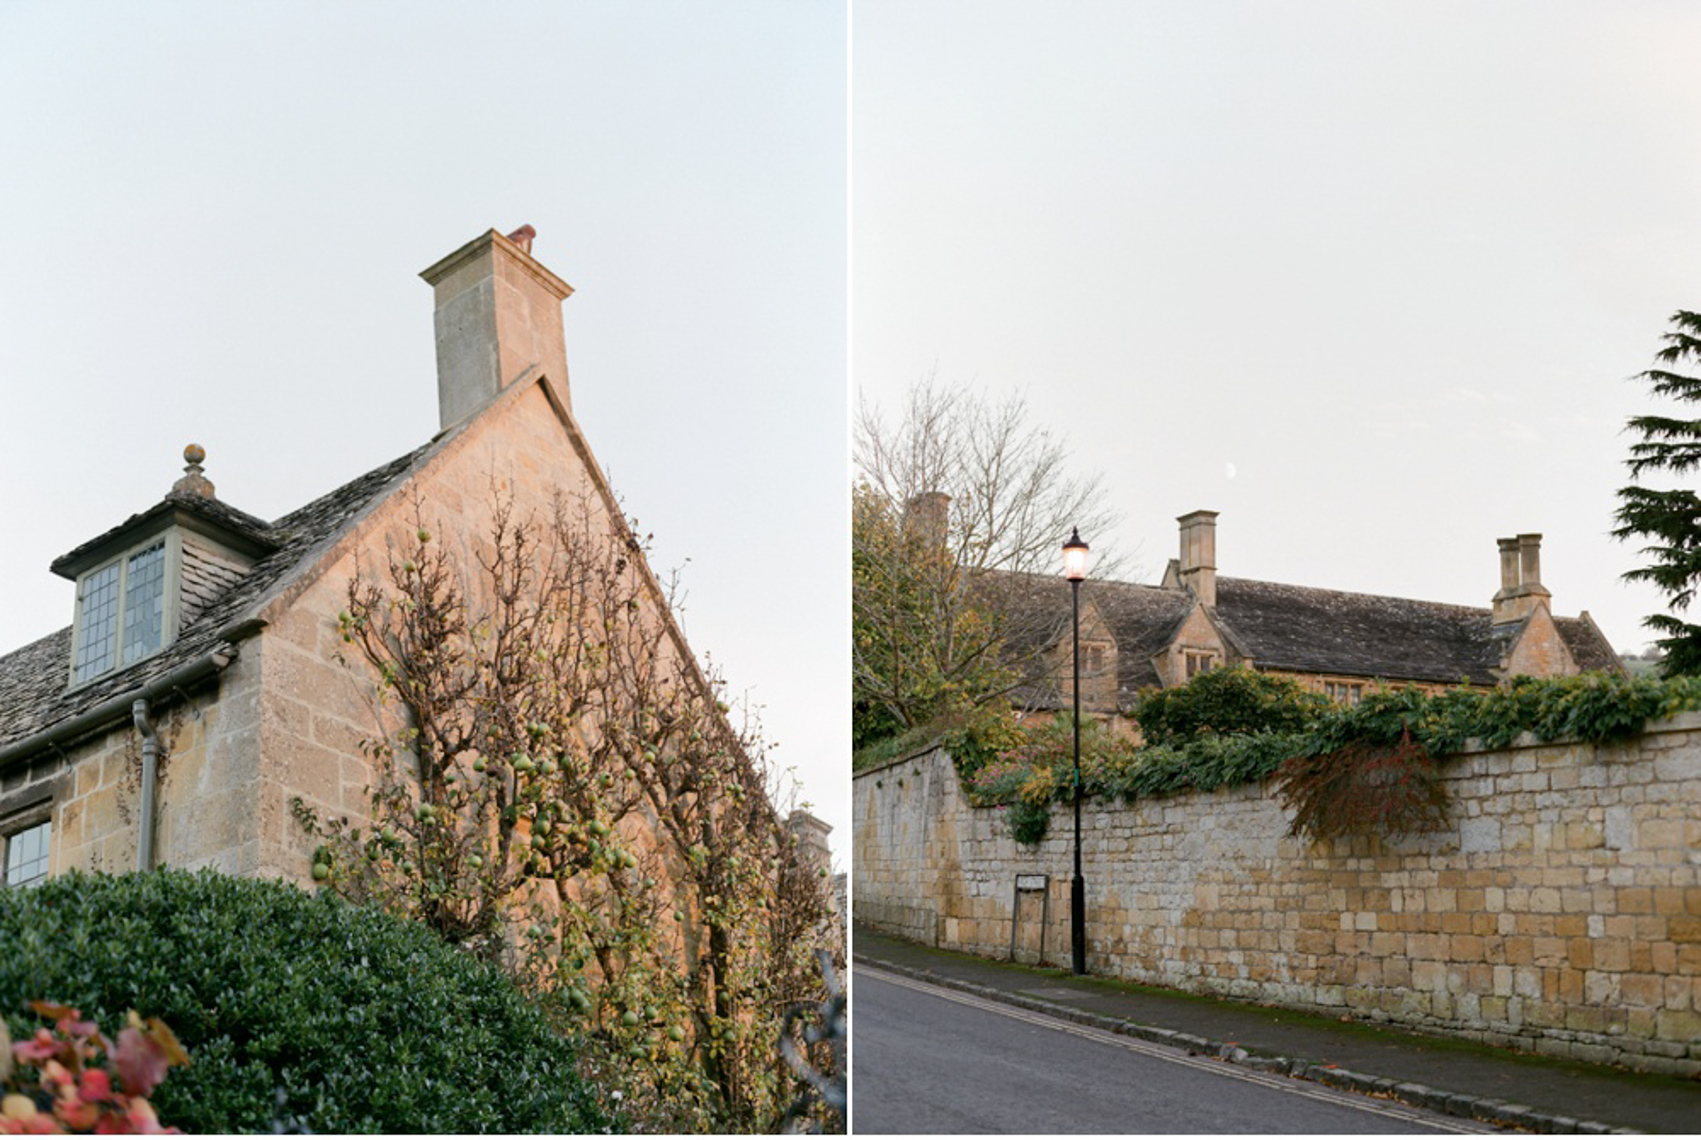 Cotswolds_WeddingPhotographer_UK©MadalinaSheldon_50.jpg